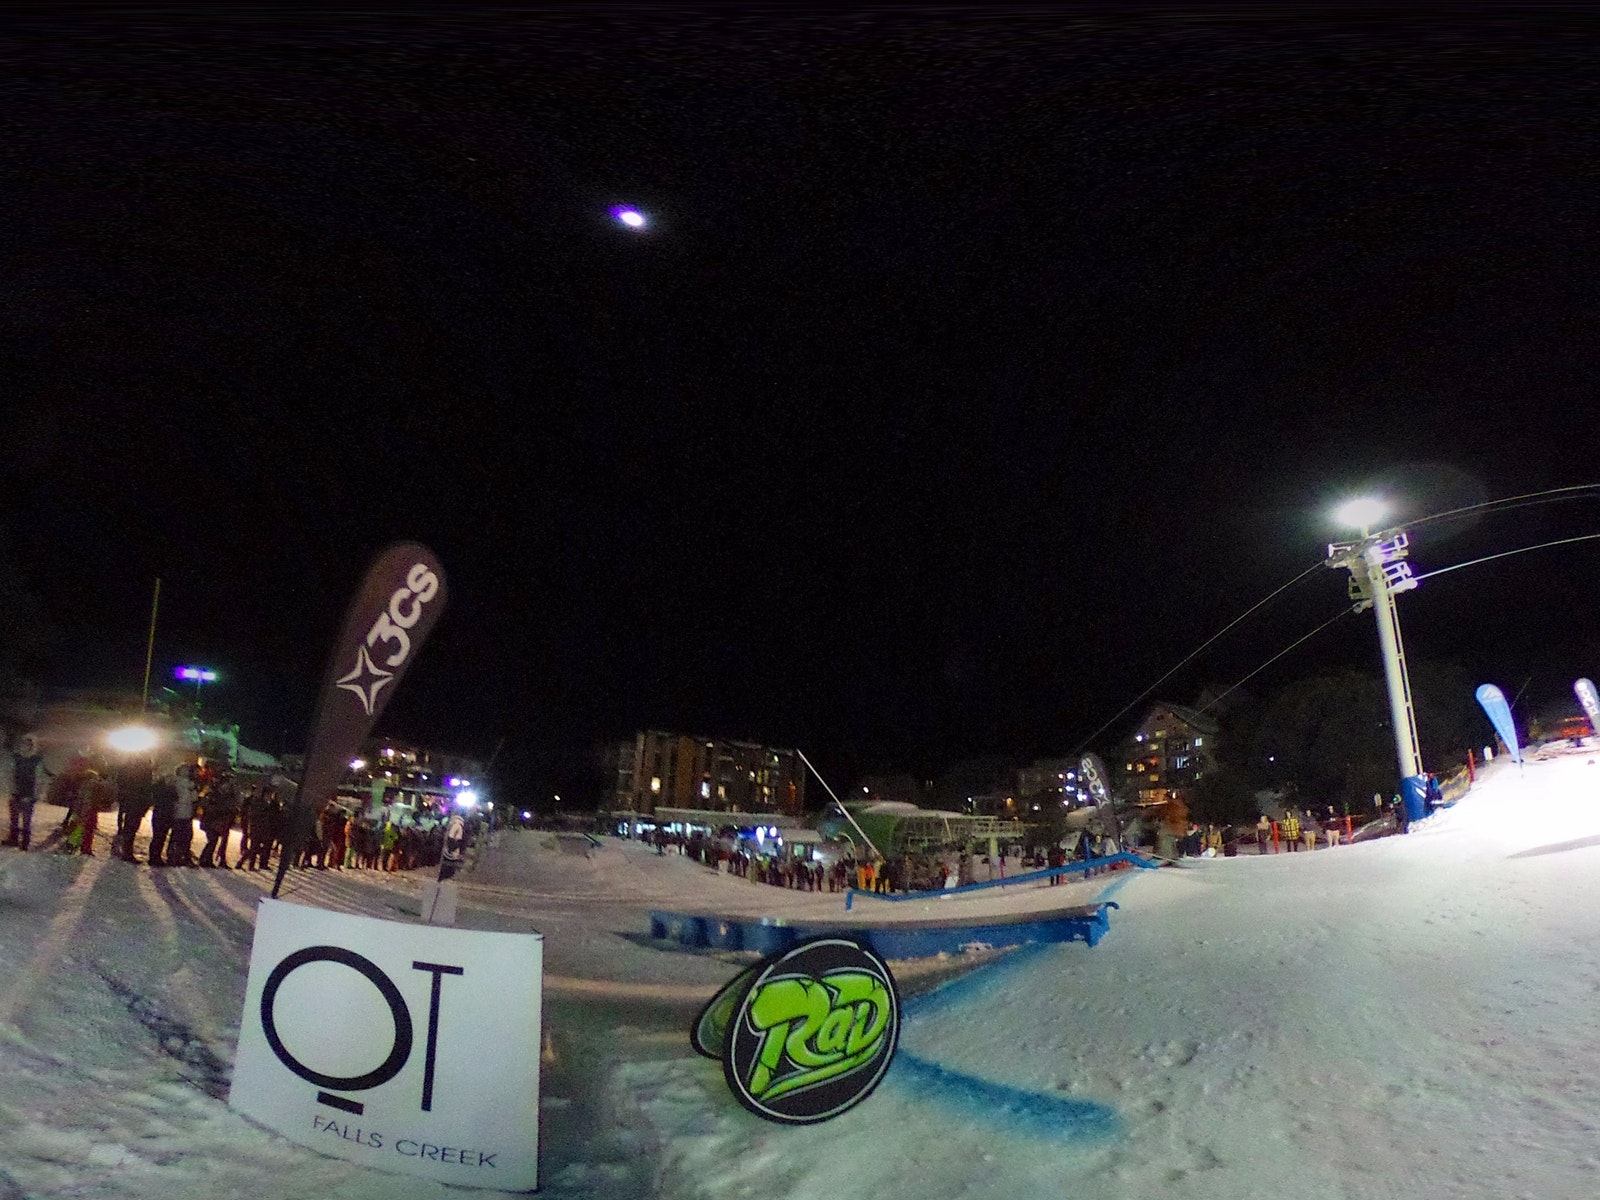 Falls Creek's rail jam under lights!